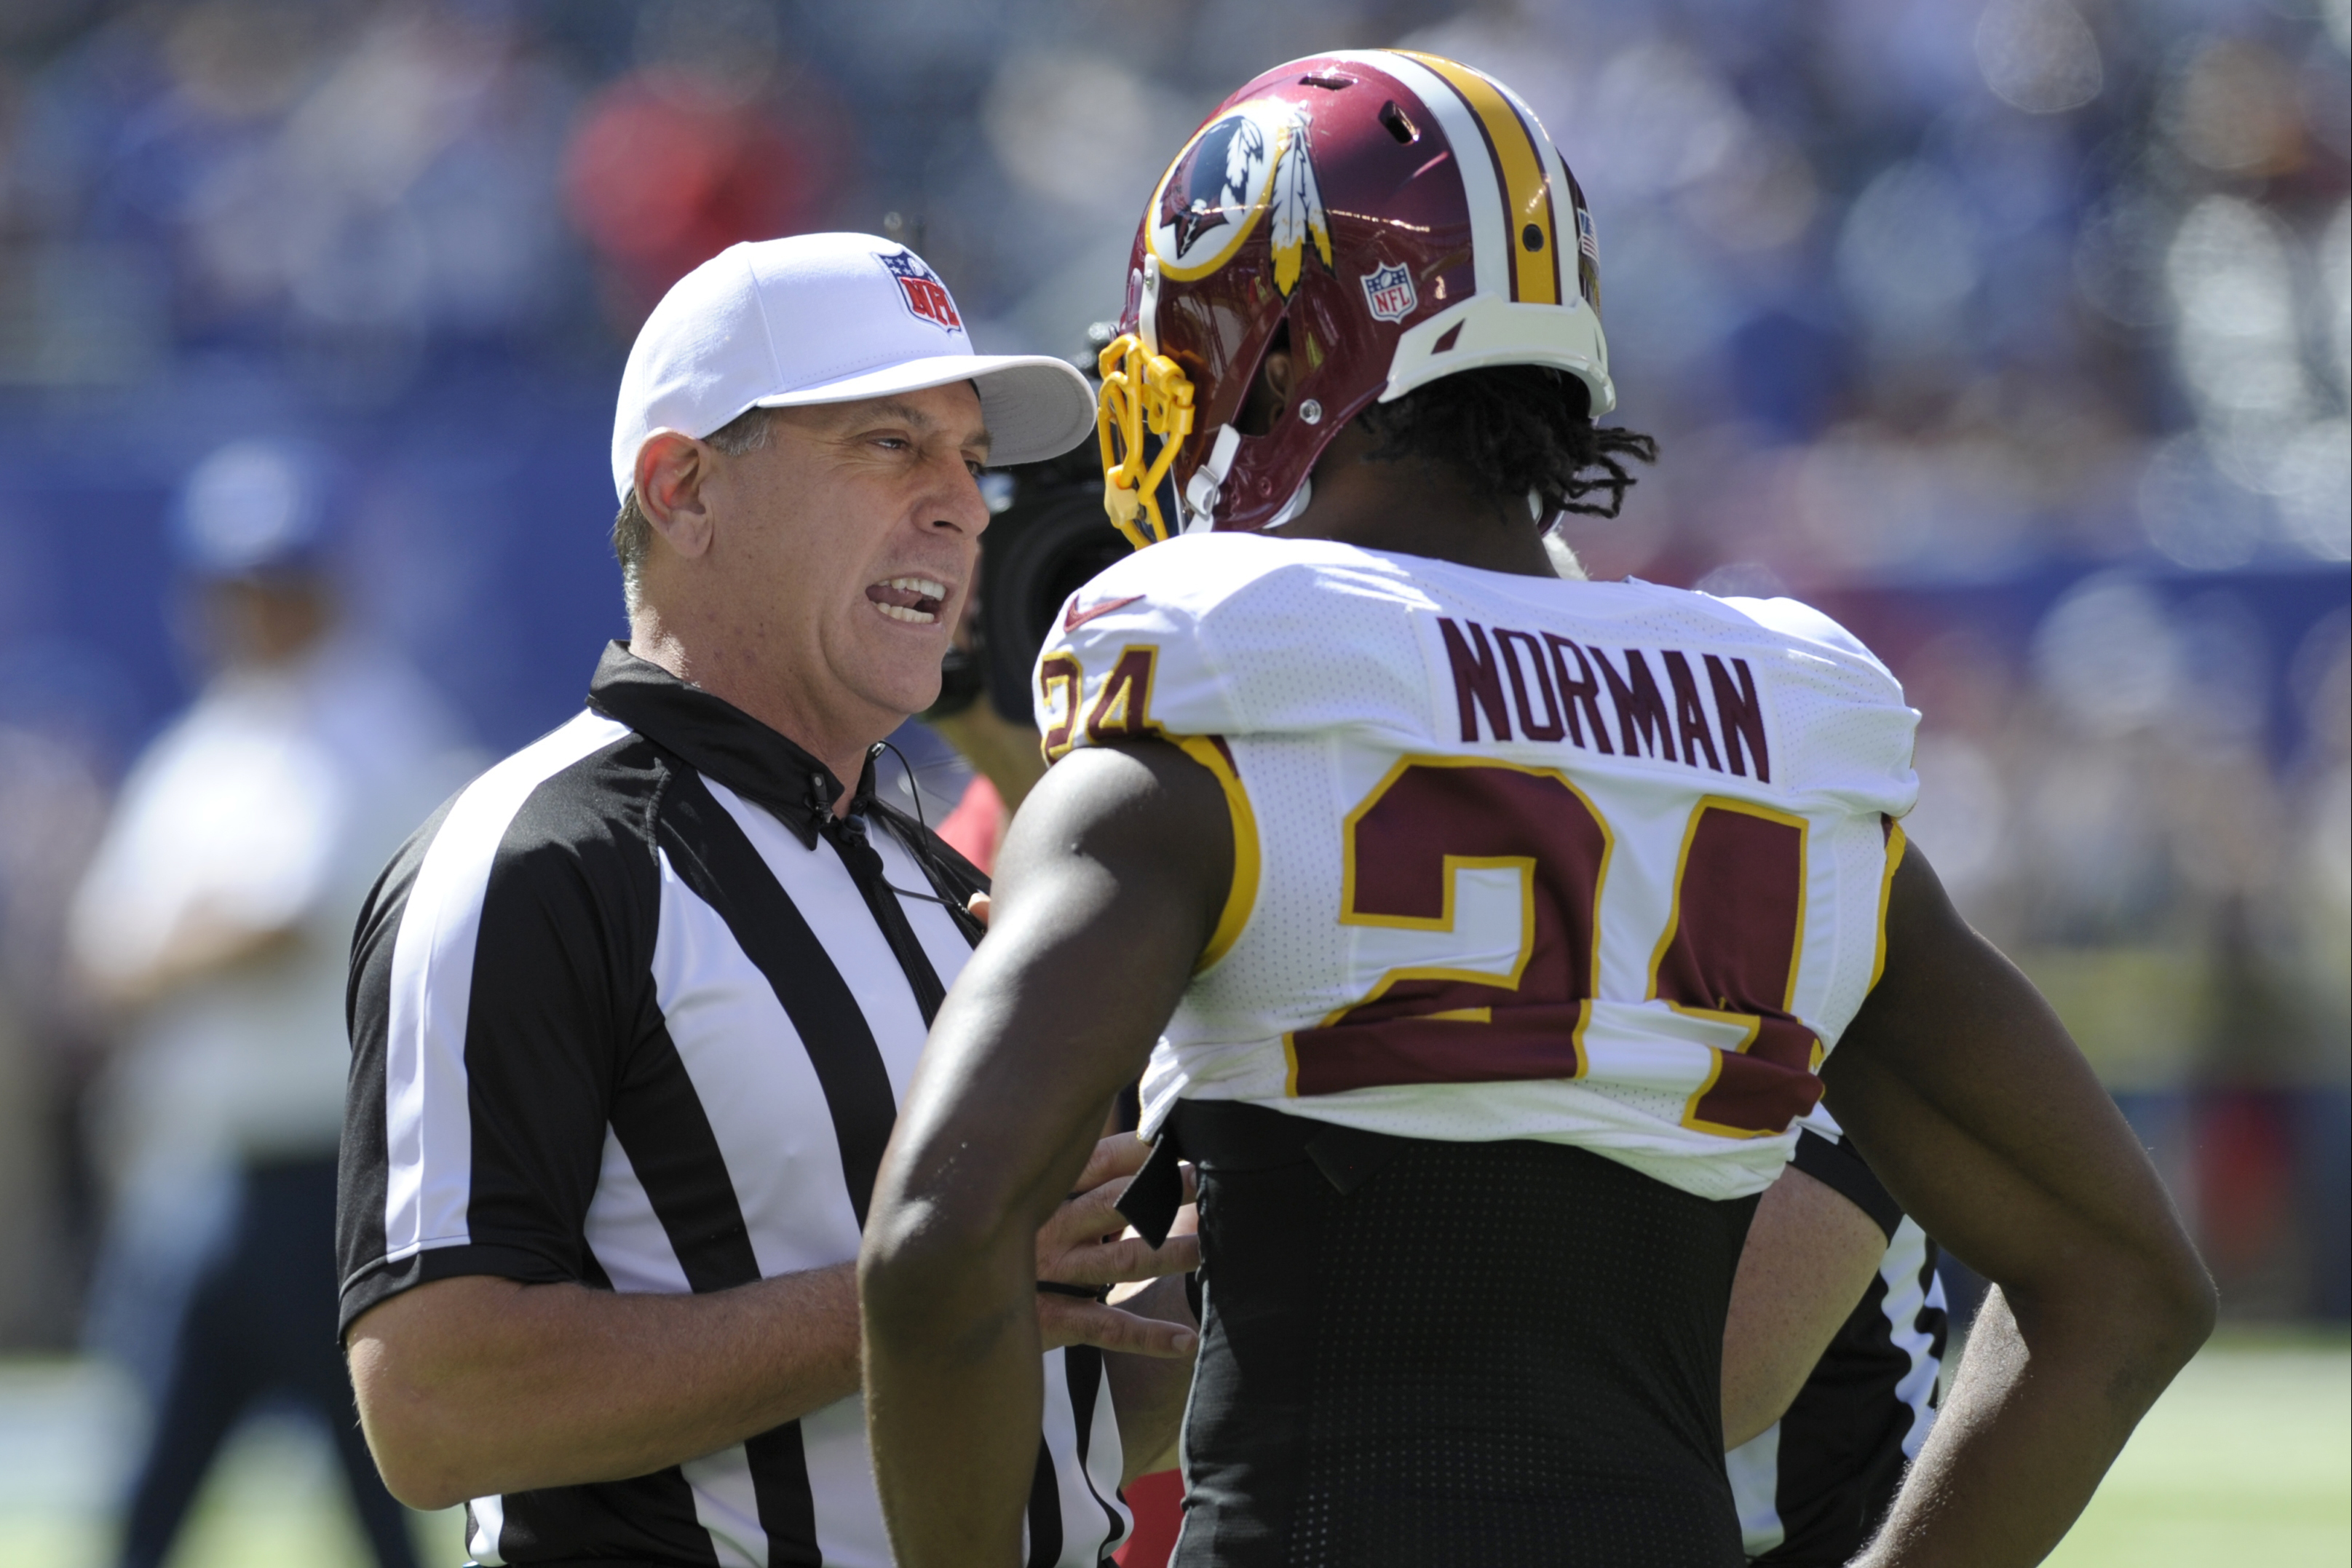 Washington Redskins cornerback Josh Norman (24) talks to officials before an NFL football game against the New York Giants Sunday, Sept. 25, 2016, in East Rutherford, N.J. (AP Photo/Bill Kostroun)